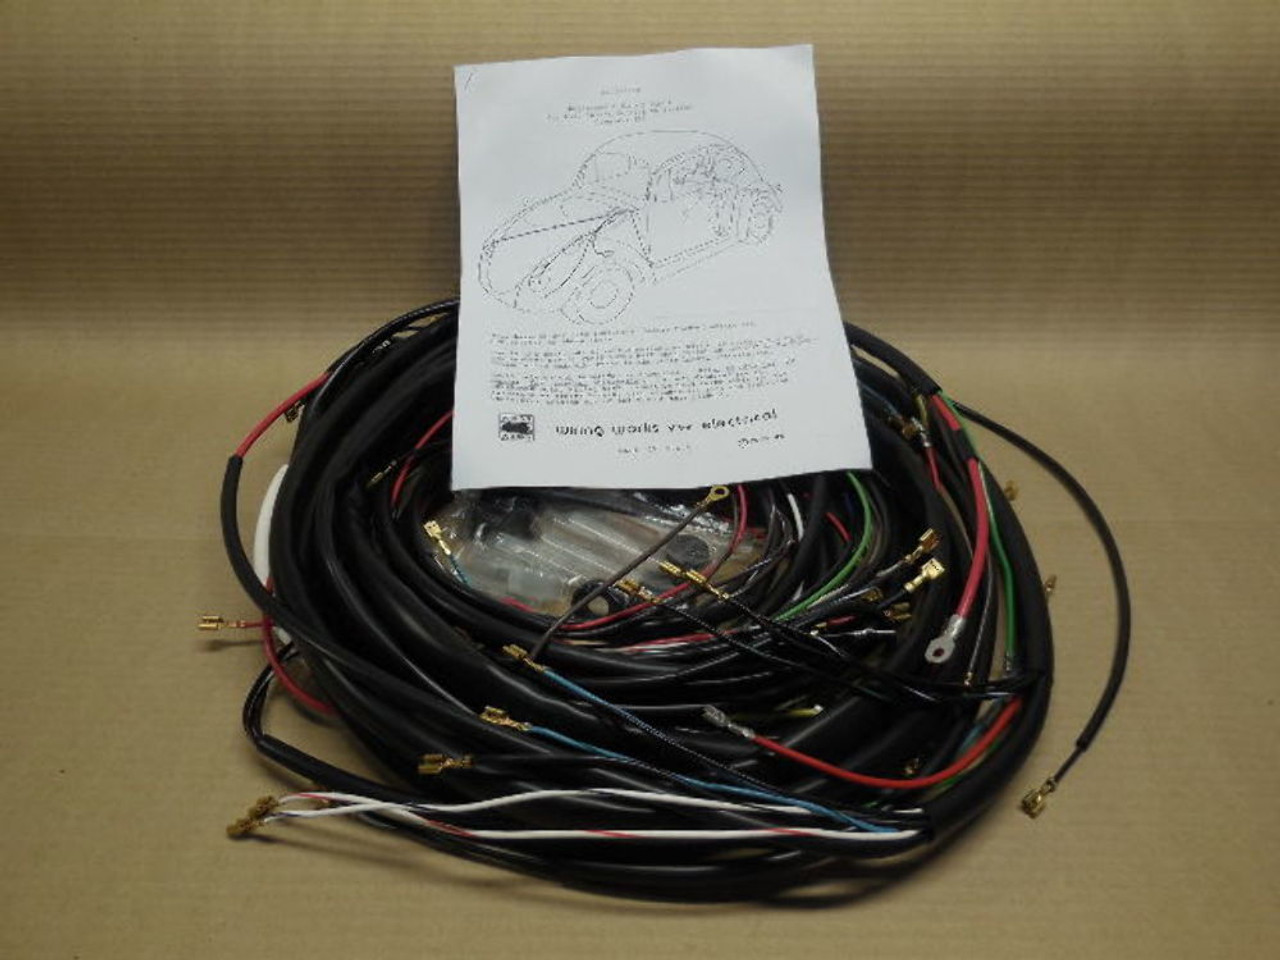 1966 VW Volkswagen Bug Sedan Complete Wiring works Harness wire kit Wire Harness Vw Bug on bus wire harness, hot rod wire harness, vw golf wire harness, car wire harness, motorcycle wire harness, ford wire harness, honda wire harness, vw dune buggy wire harness, corvette wire harness,